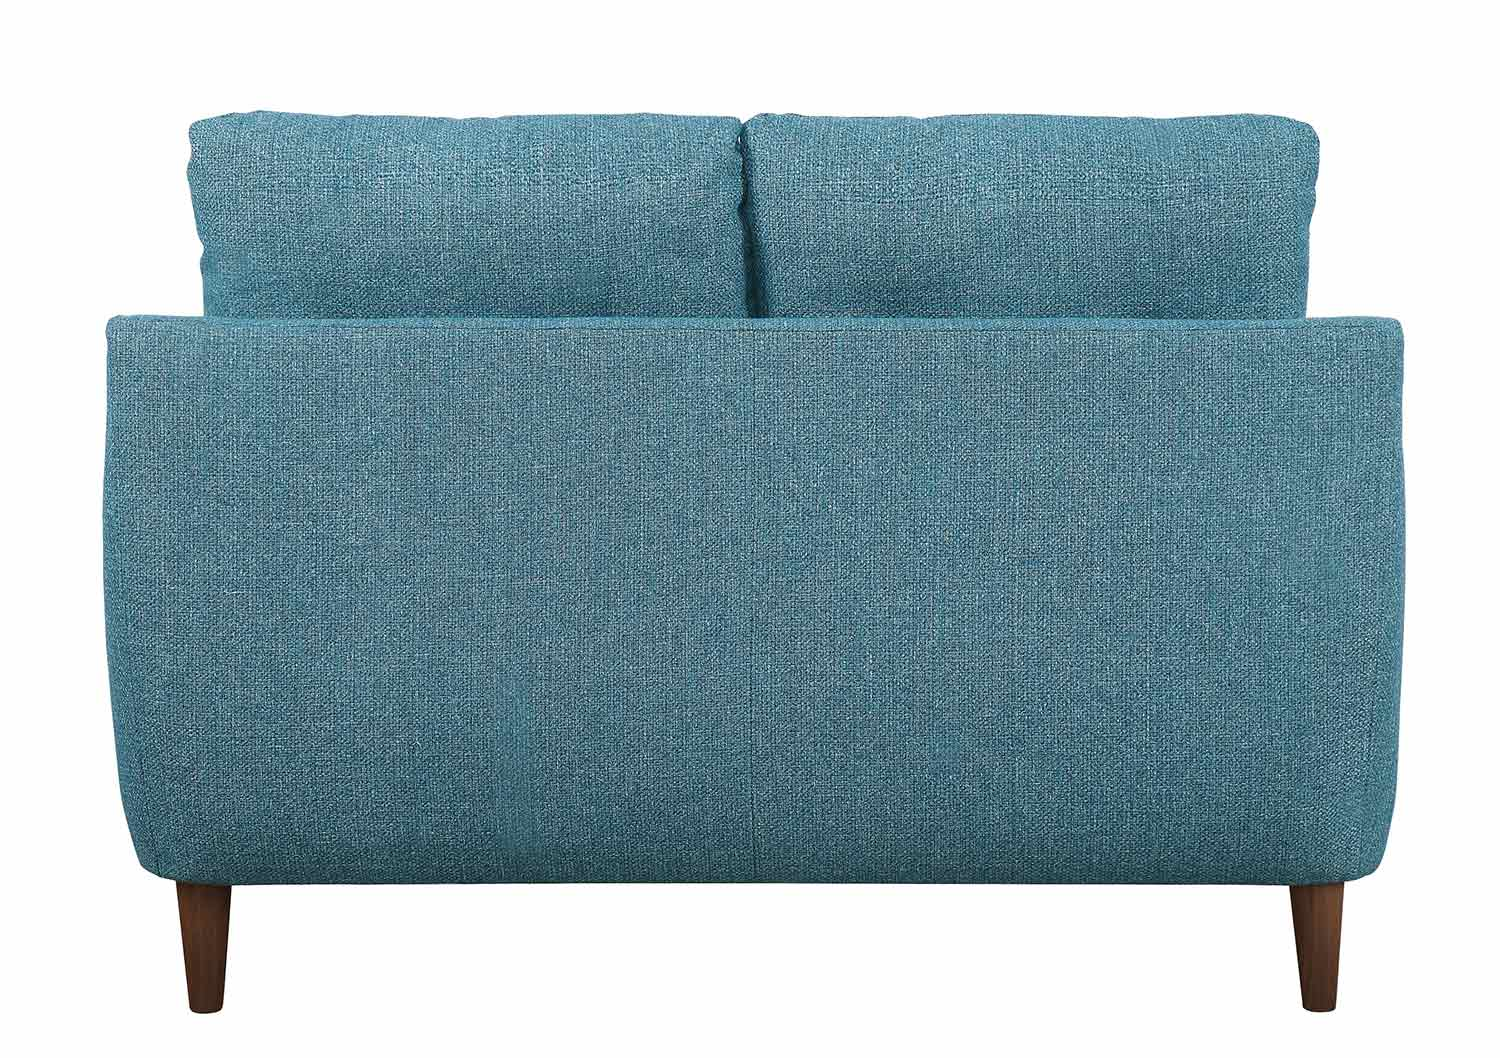 Homelegance Cagle Love Seat - Blue